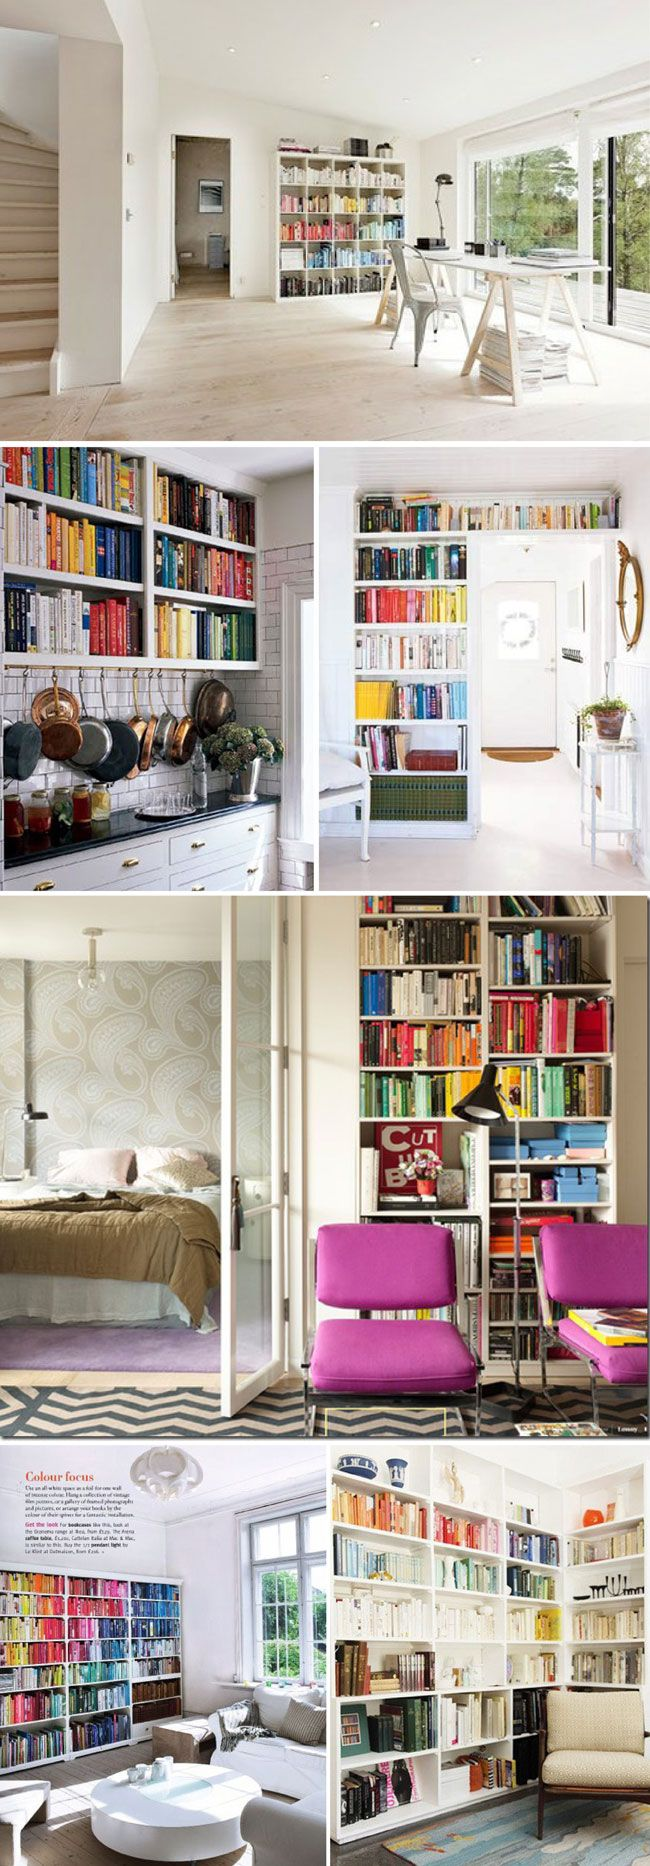 61 best storage shelves images on pinterest home architecture obsessed with the idea of organizing books by color